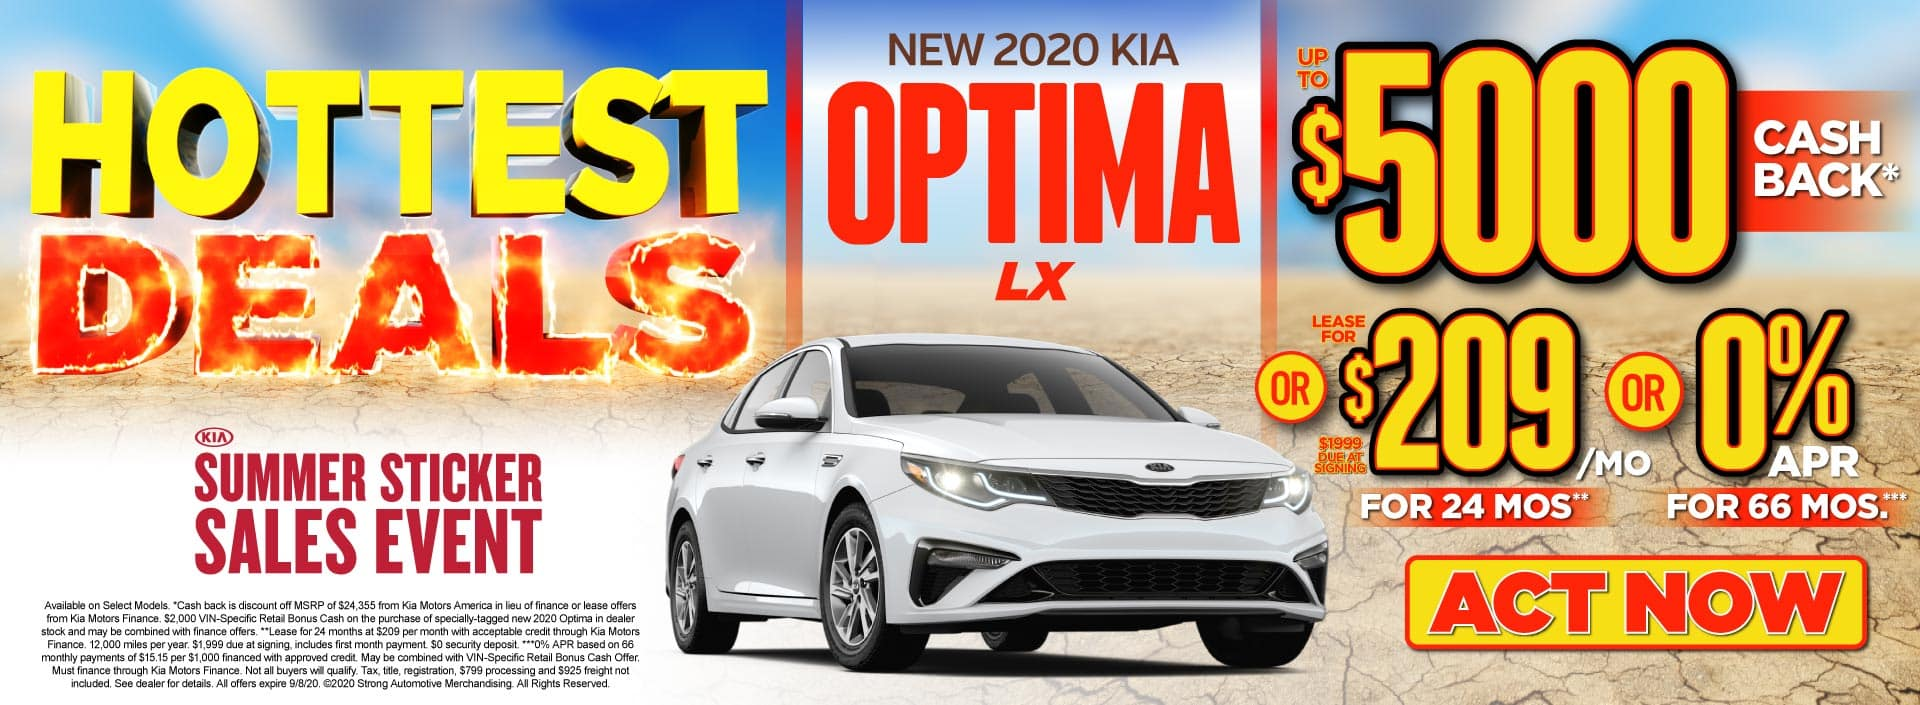 New 2020 Kia Optima up to $5000 Cash Back - ACT NOW